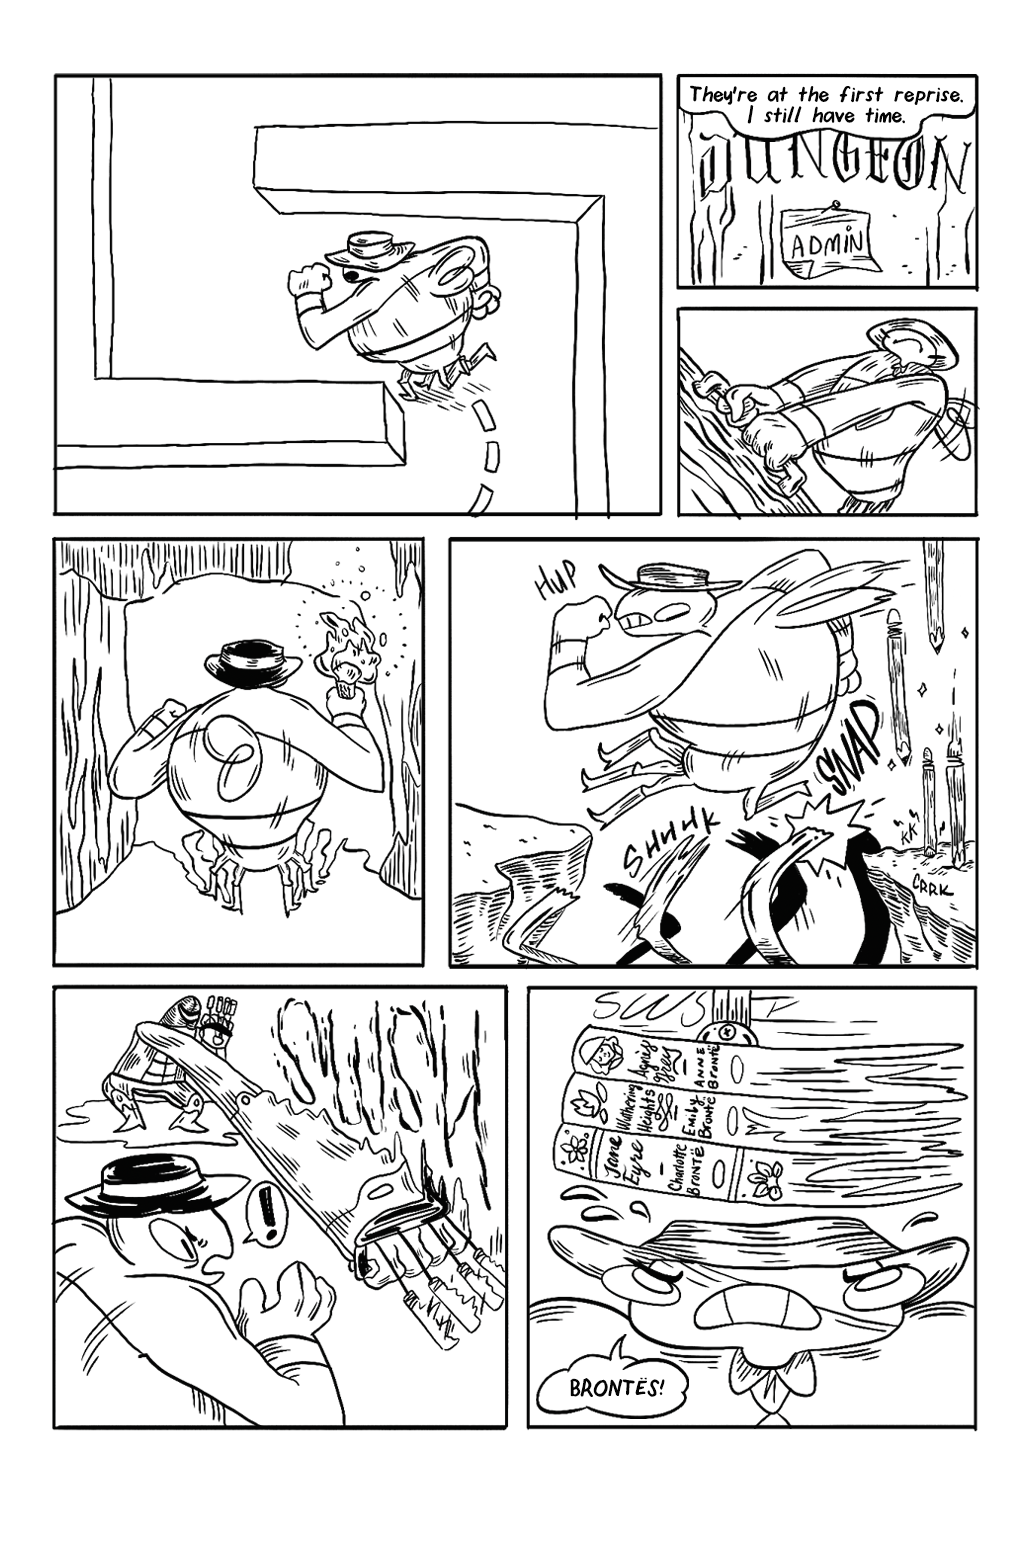 02_page13_web.png